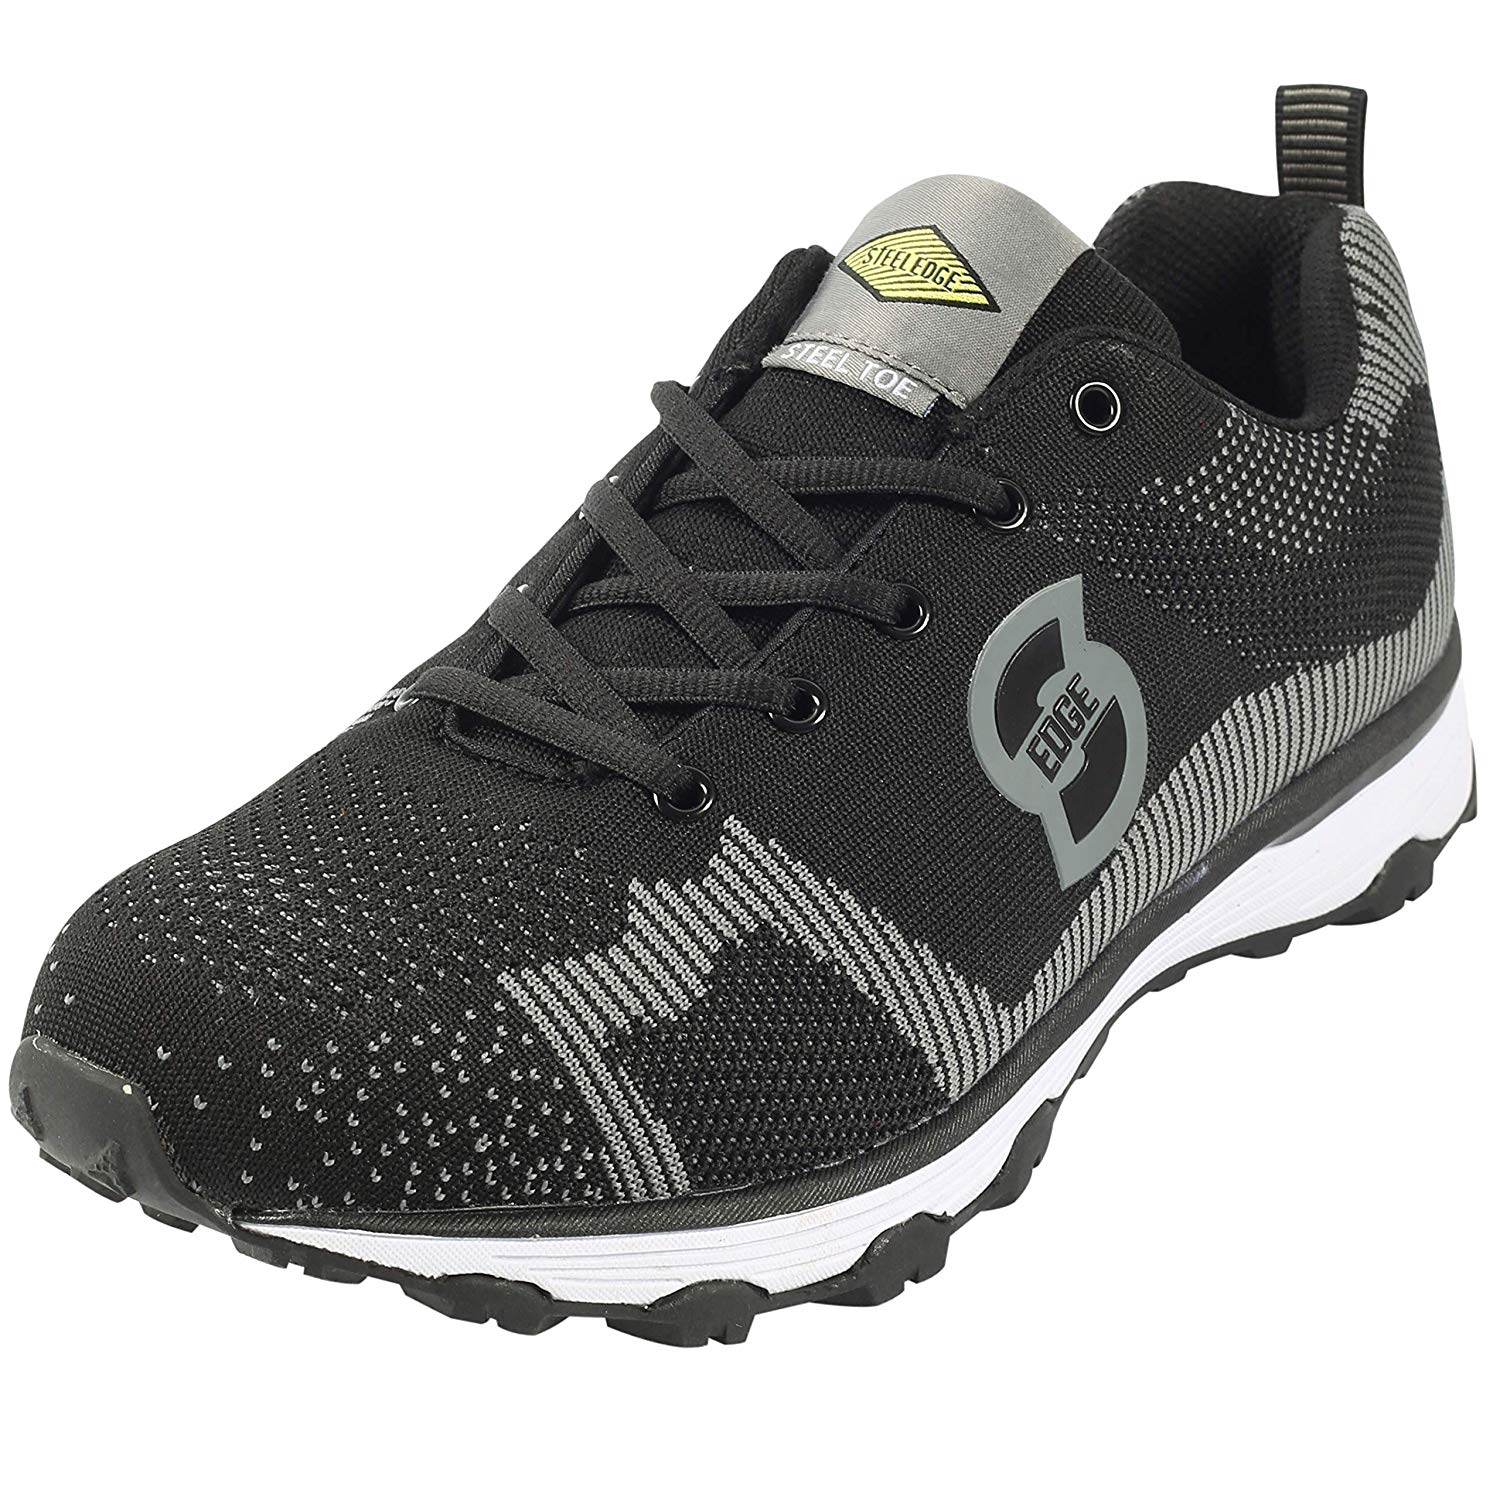 f1d4e75c4a4 Get Quotations · Safety Toe Athletic Shoes - Trainer Style